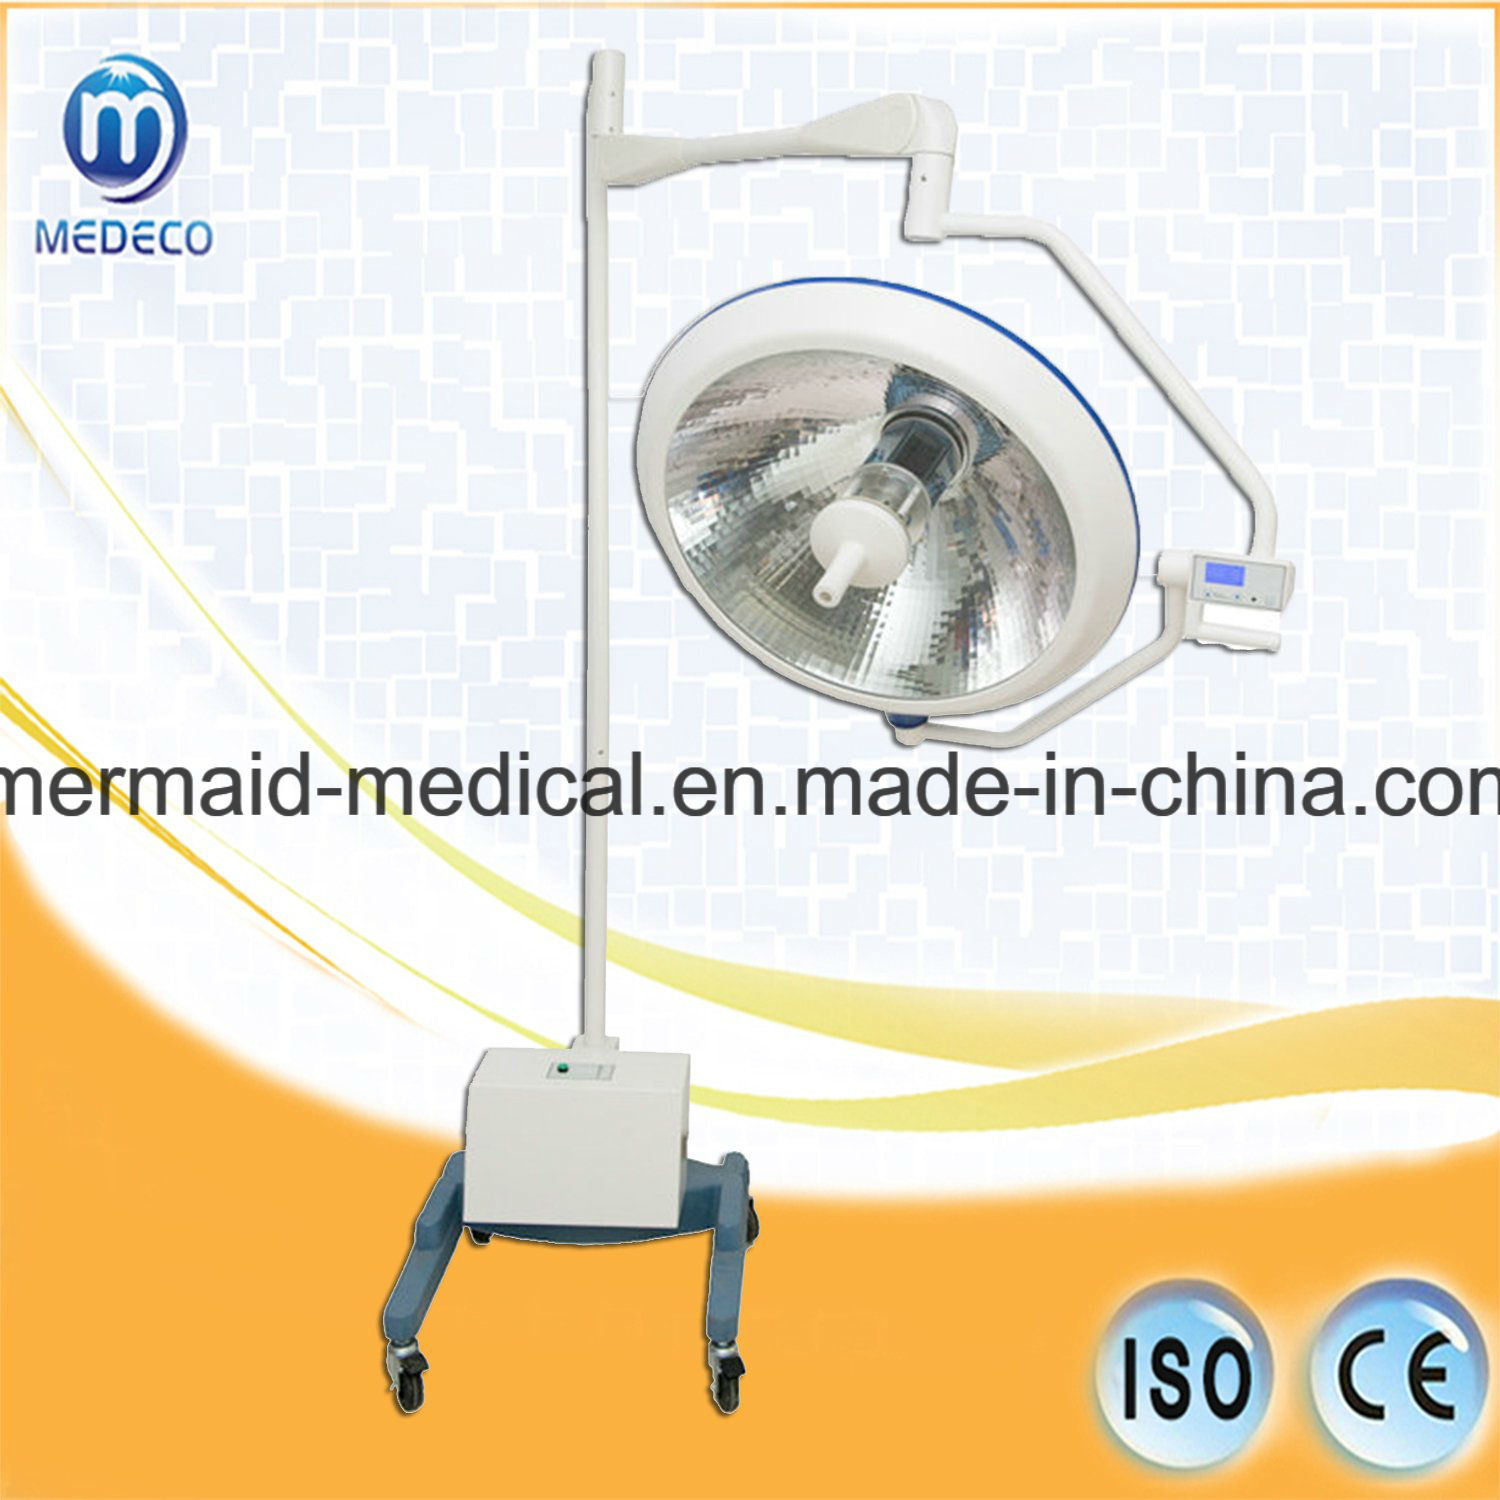 Surgical Equipment Operation Halogen Therapy Light with Ce/ISO Approved (Mobile type with battery XYX-F700 ECOA035) pictures & photos